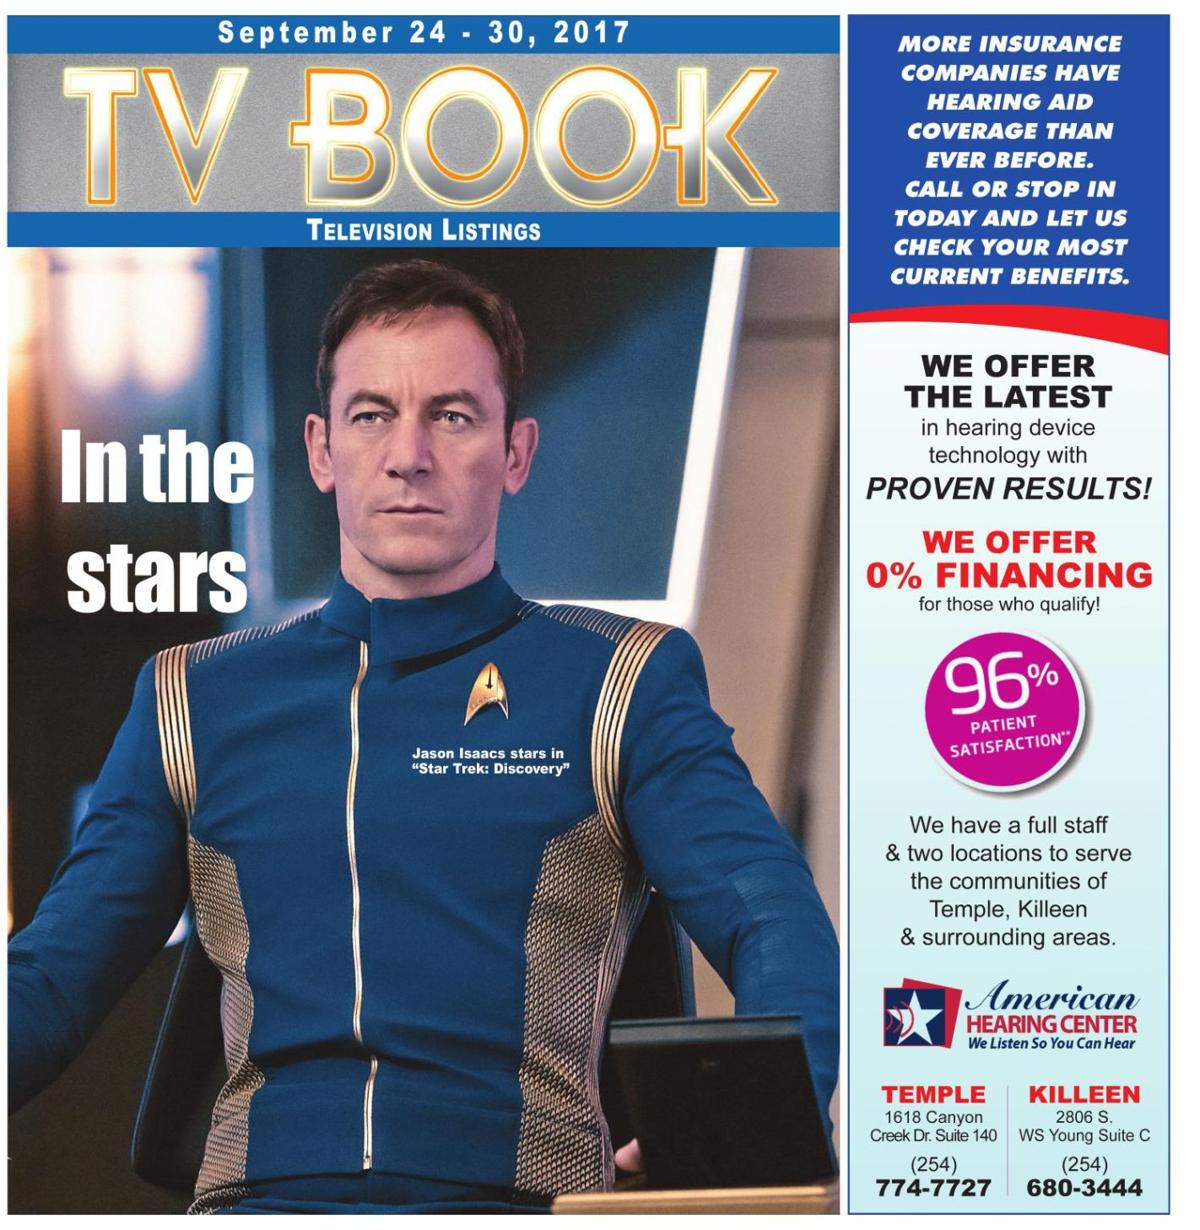 TV Book September 24th - 30th